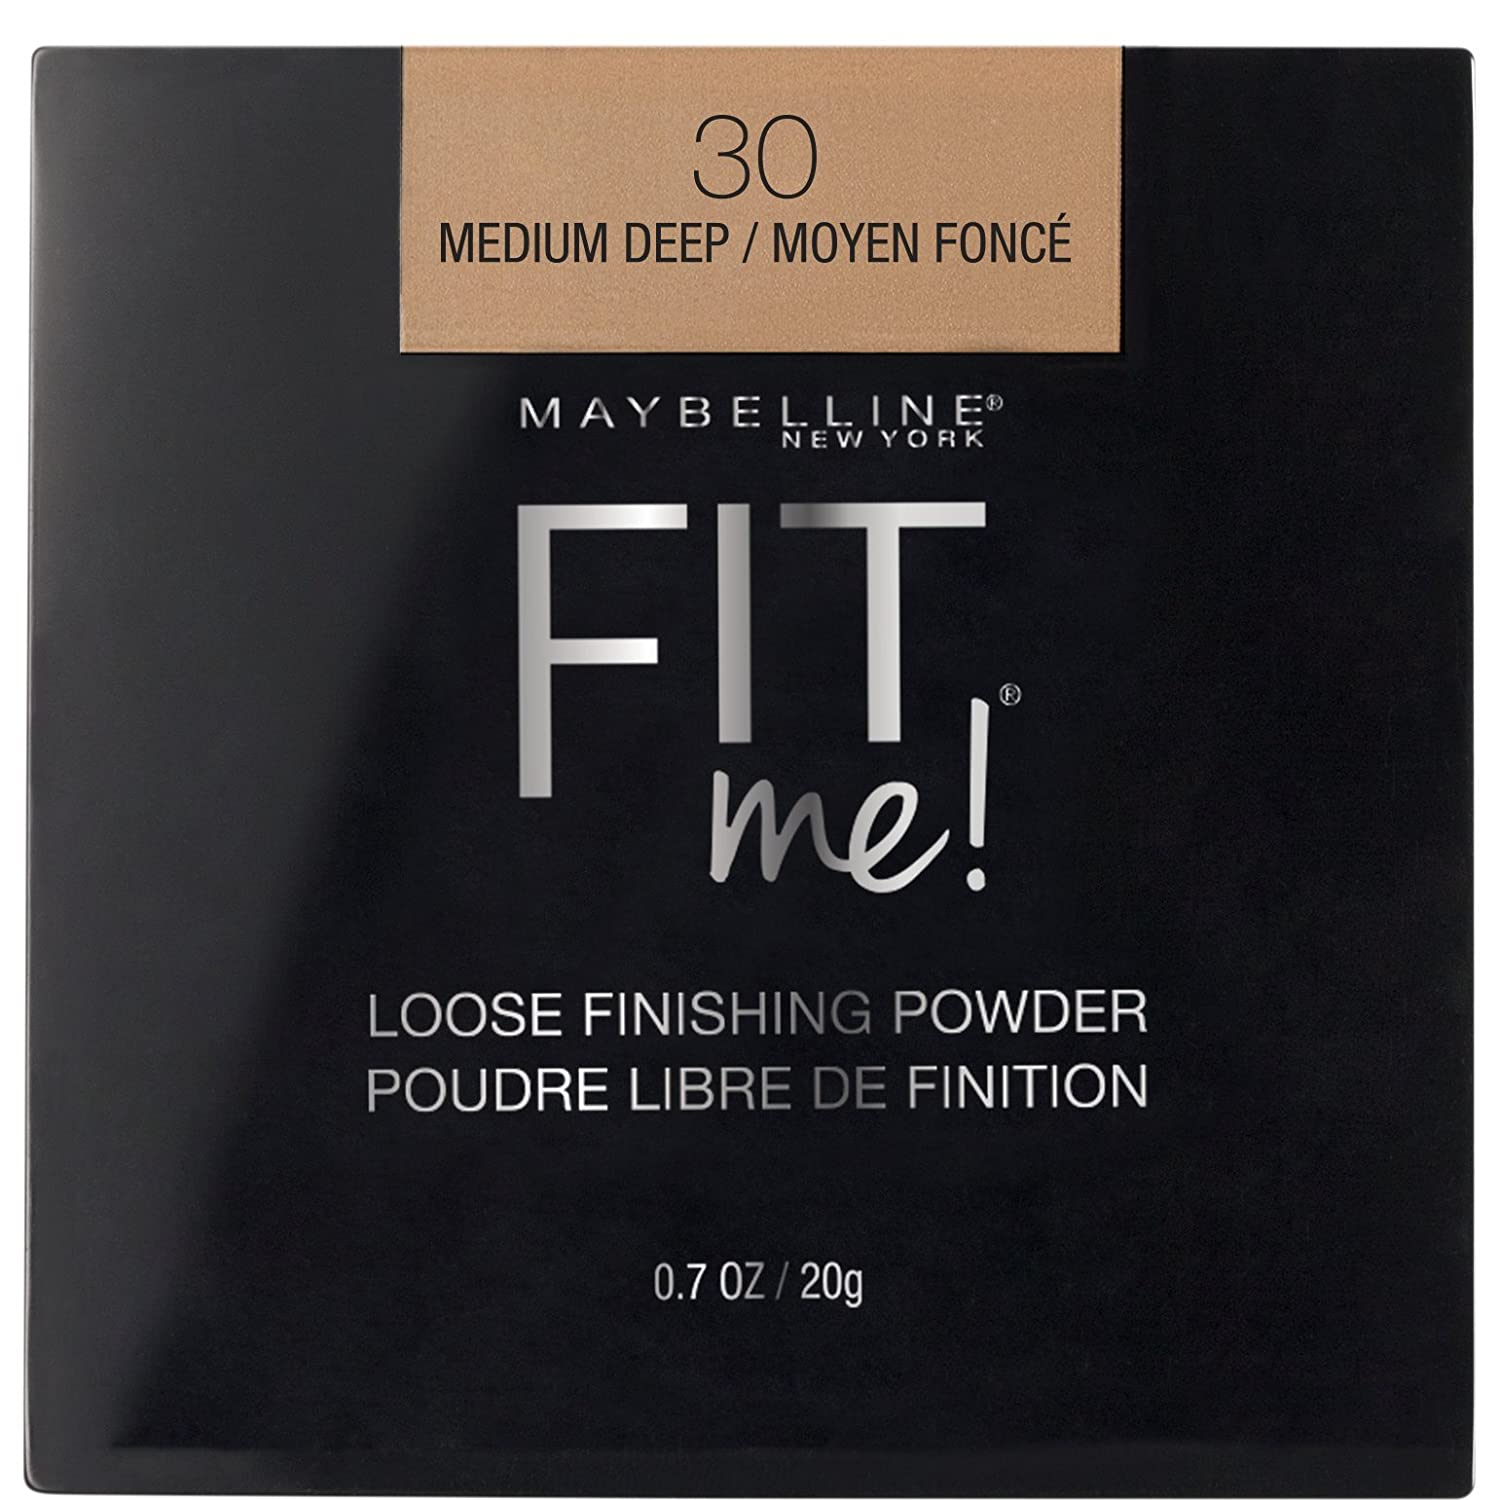 Maybelline New York Fit Me Loose Finishing Powder, Deep, 0.7 Oz